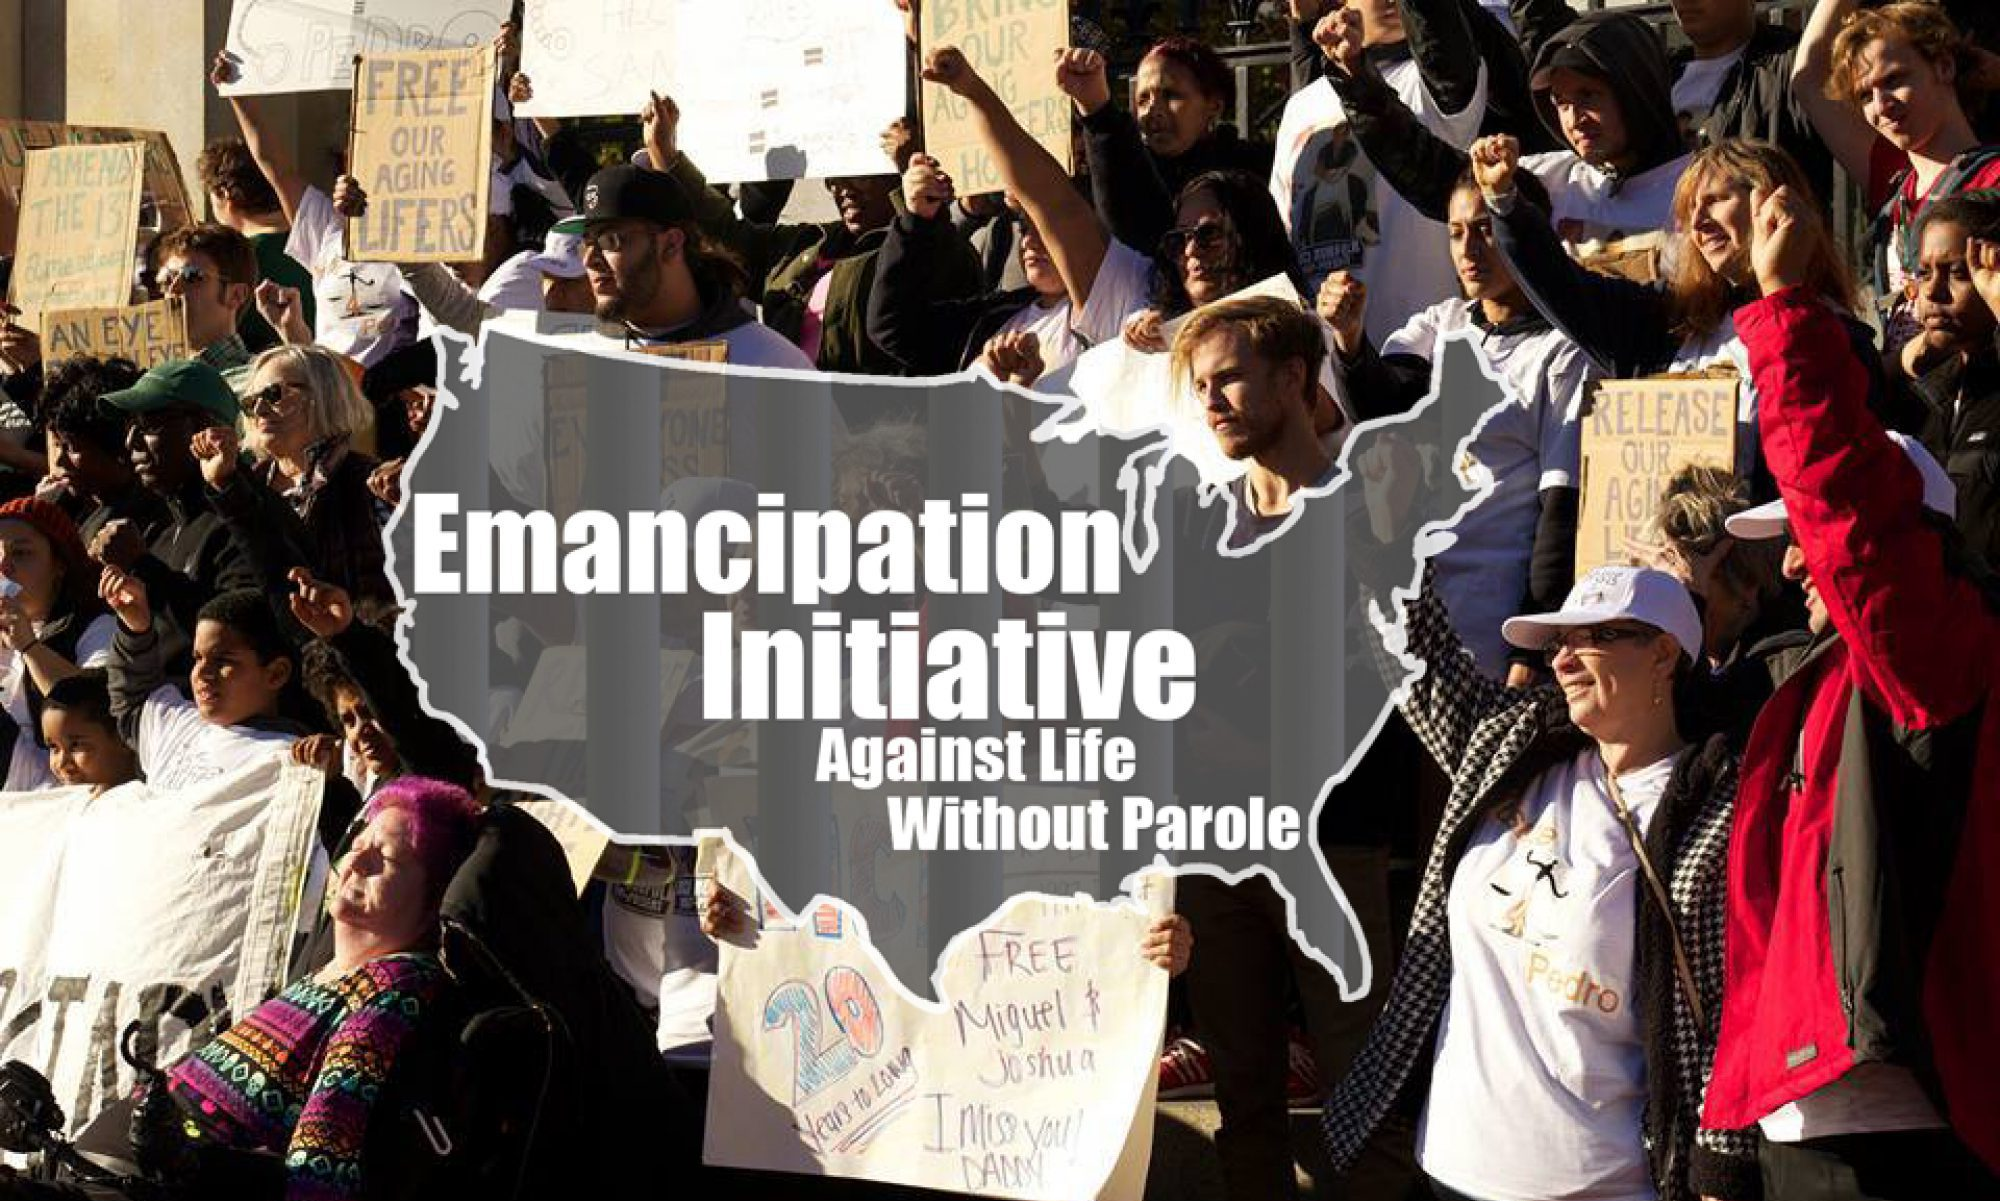 Emancipation Initiative